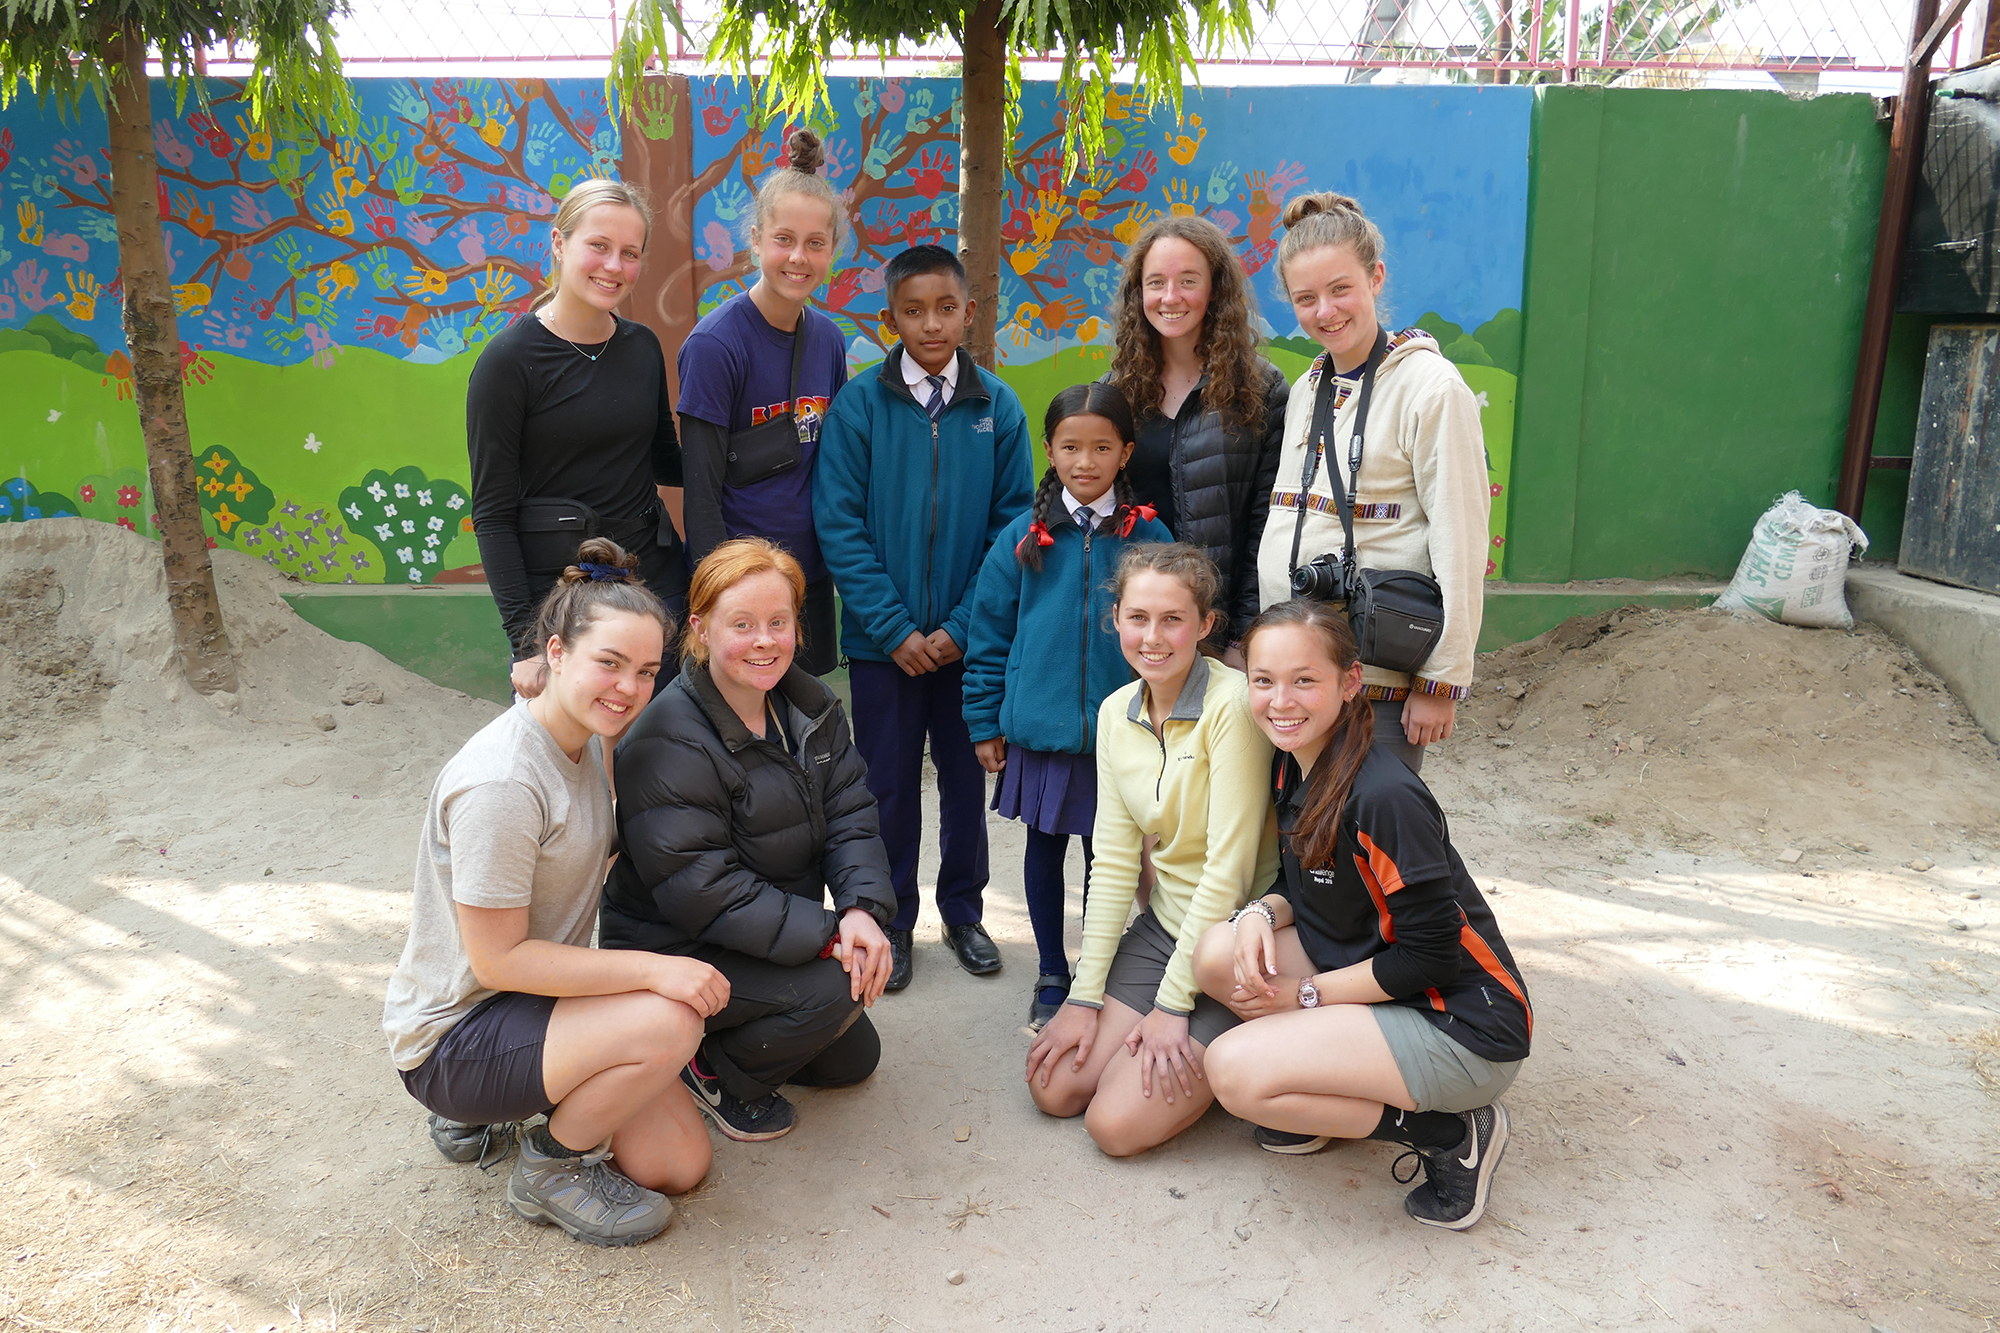 Meeting the students and staff of The Shamrock School in Nepal was a